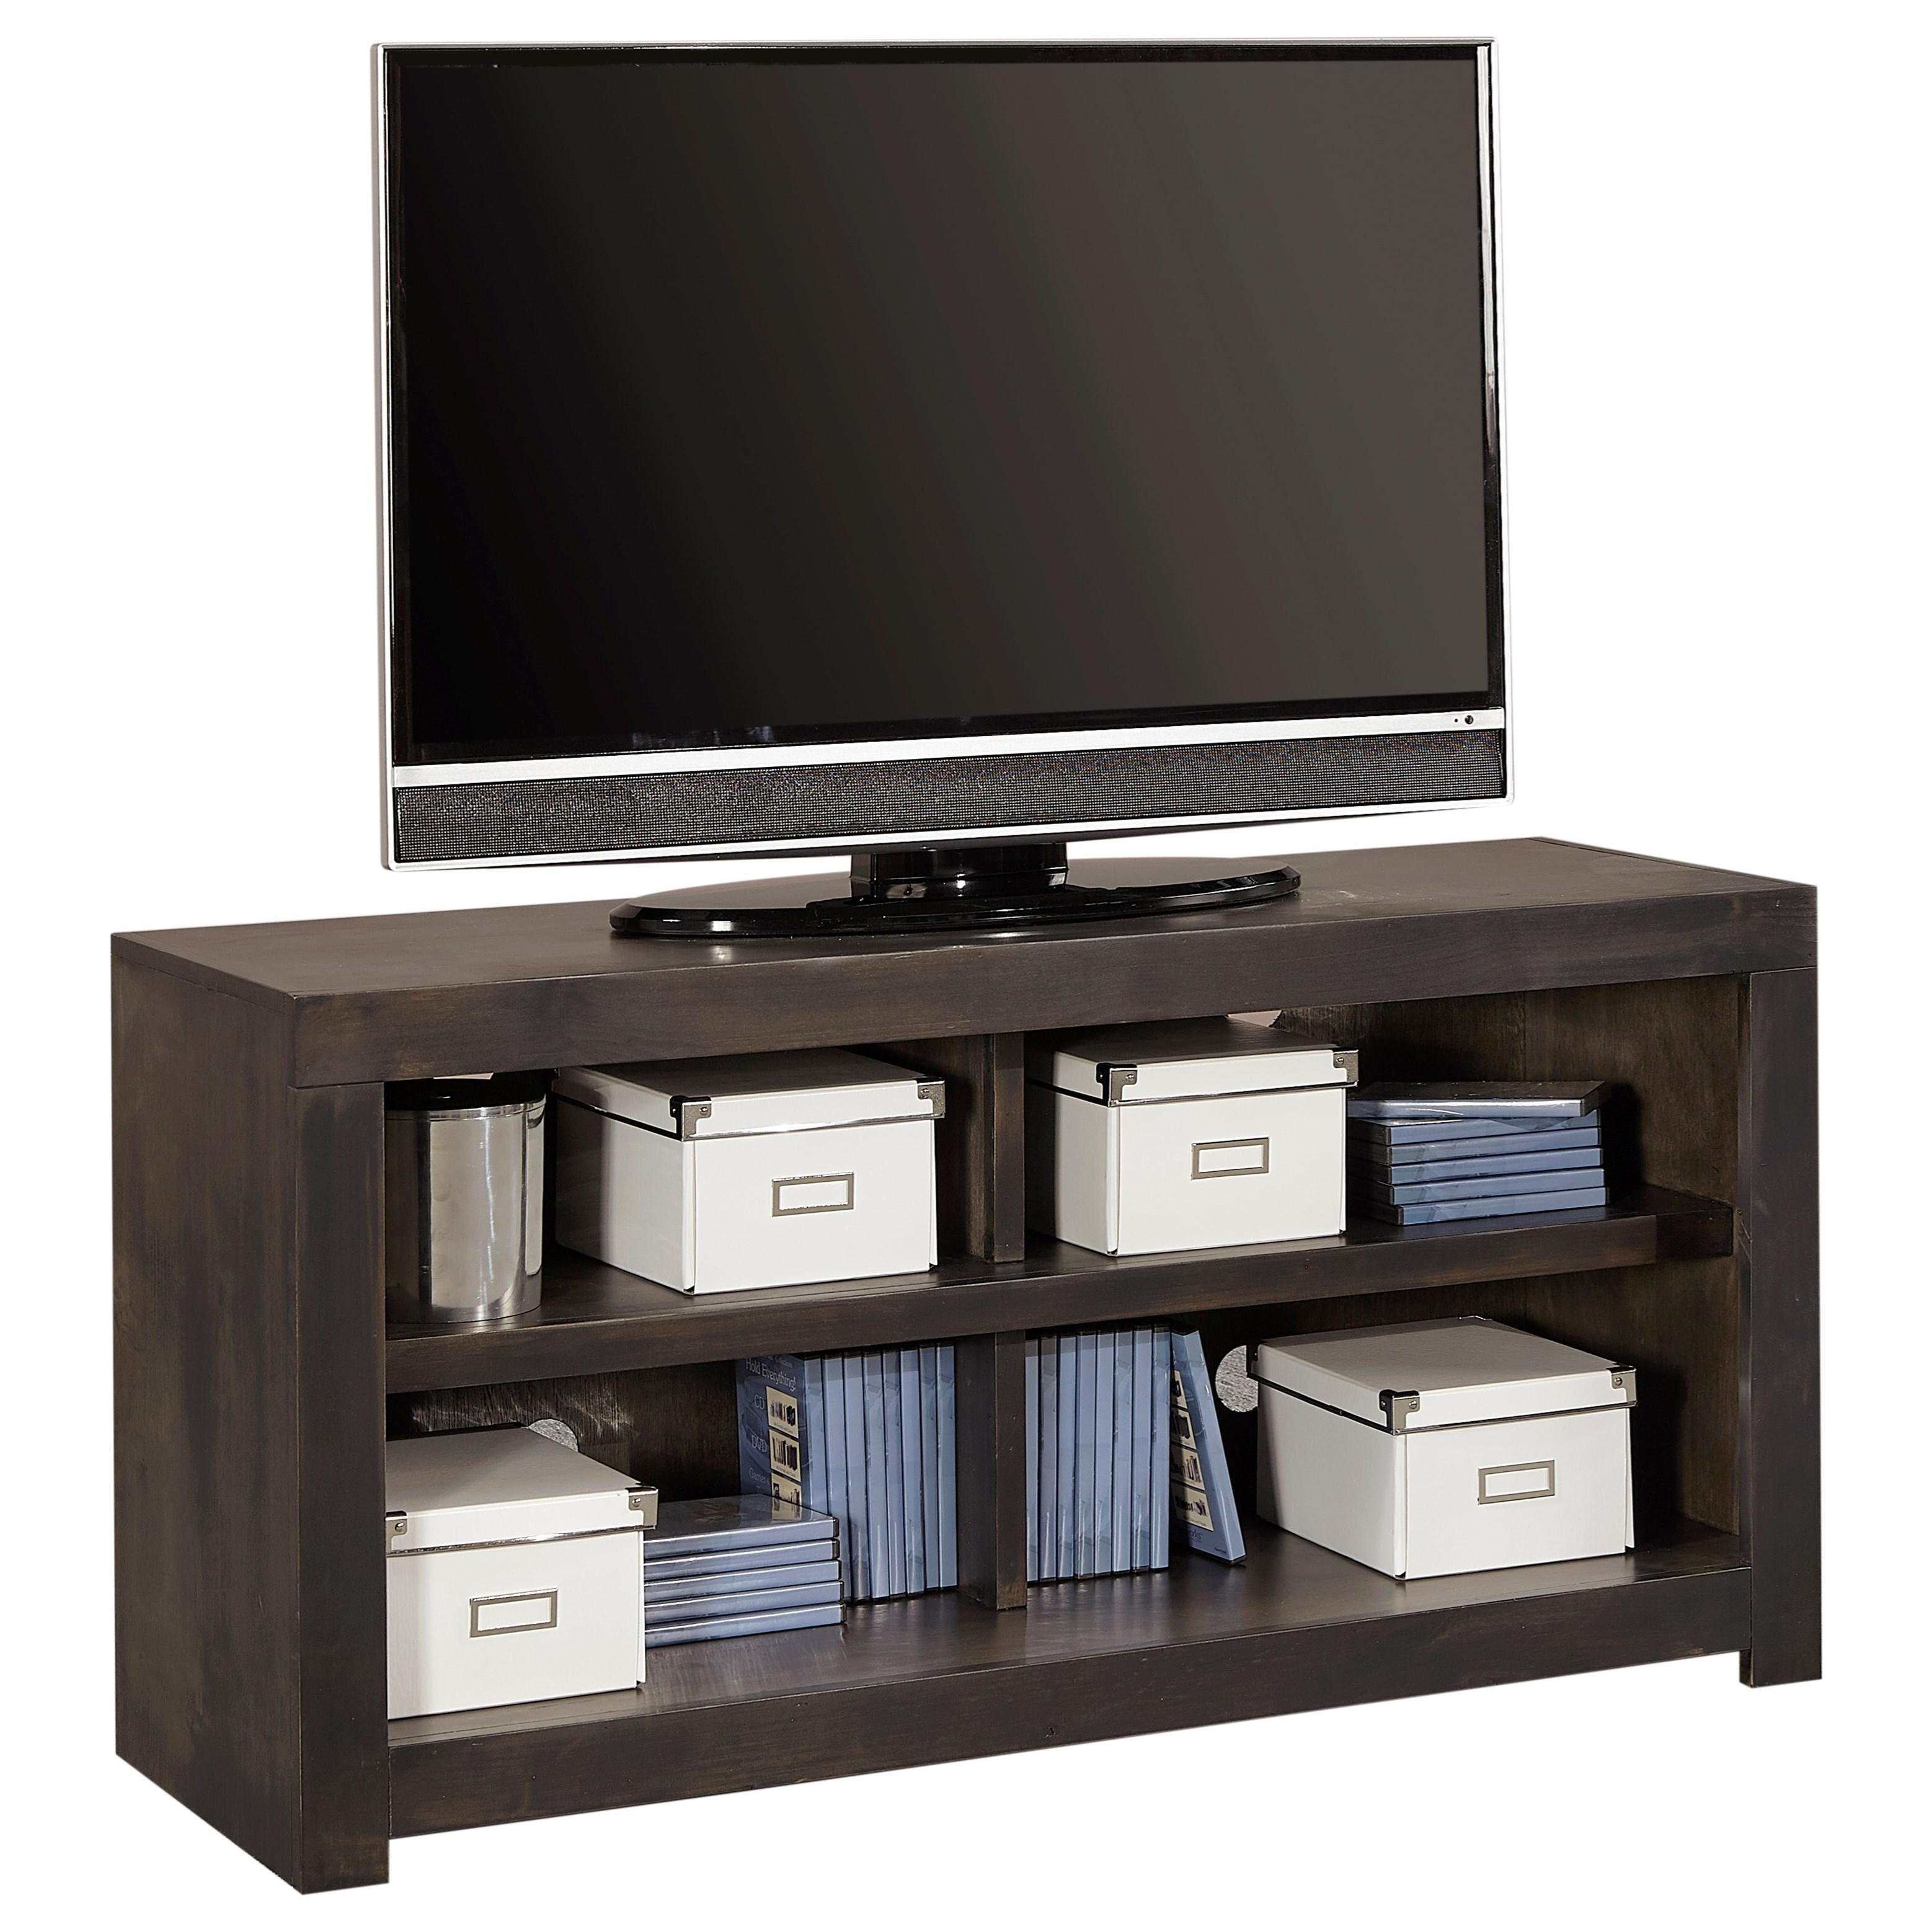 "Avery Loft 49 "" TV Console by Aspenhome at Baer's Furniture"